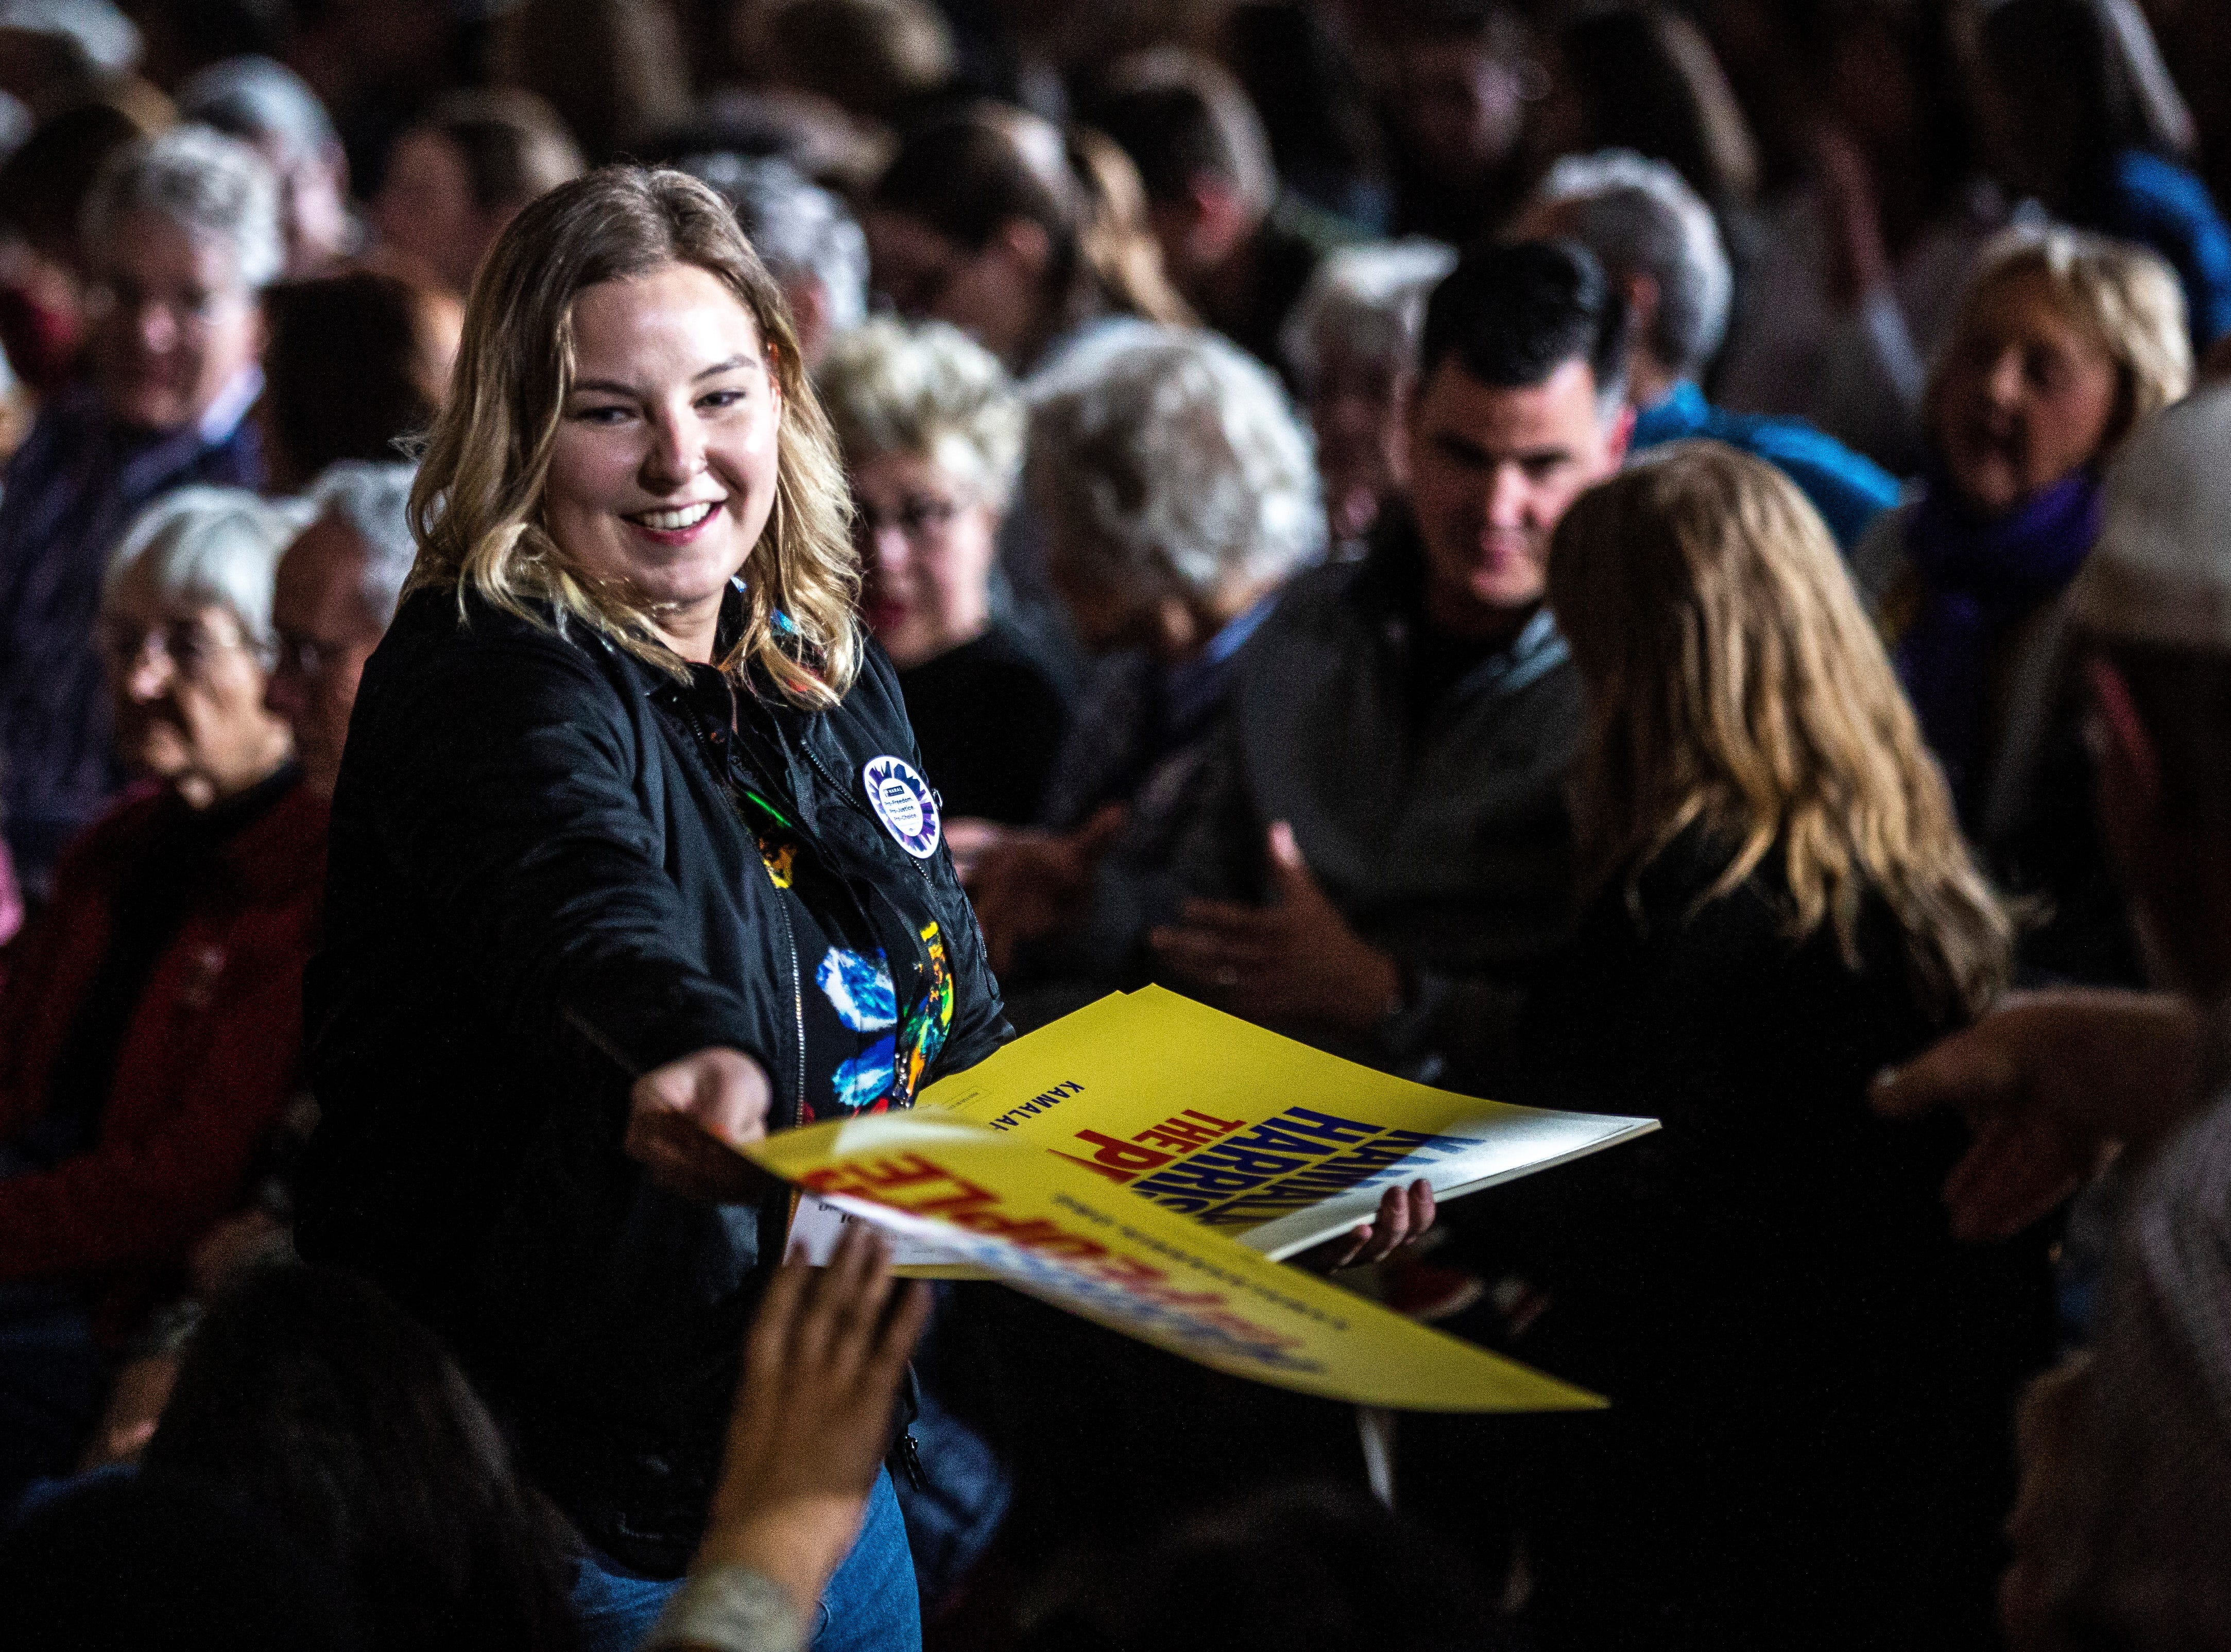 Volunteers hand out signs for U.S. Sen. Kamala Harris, D-Calif., before a town hall event on Wednesday, April 10, 2019, at the Iowa Memorial Union main lounge in Iowa City, Iowa.